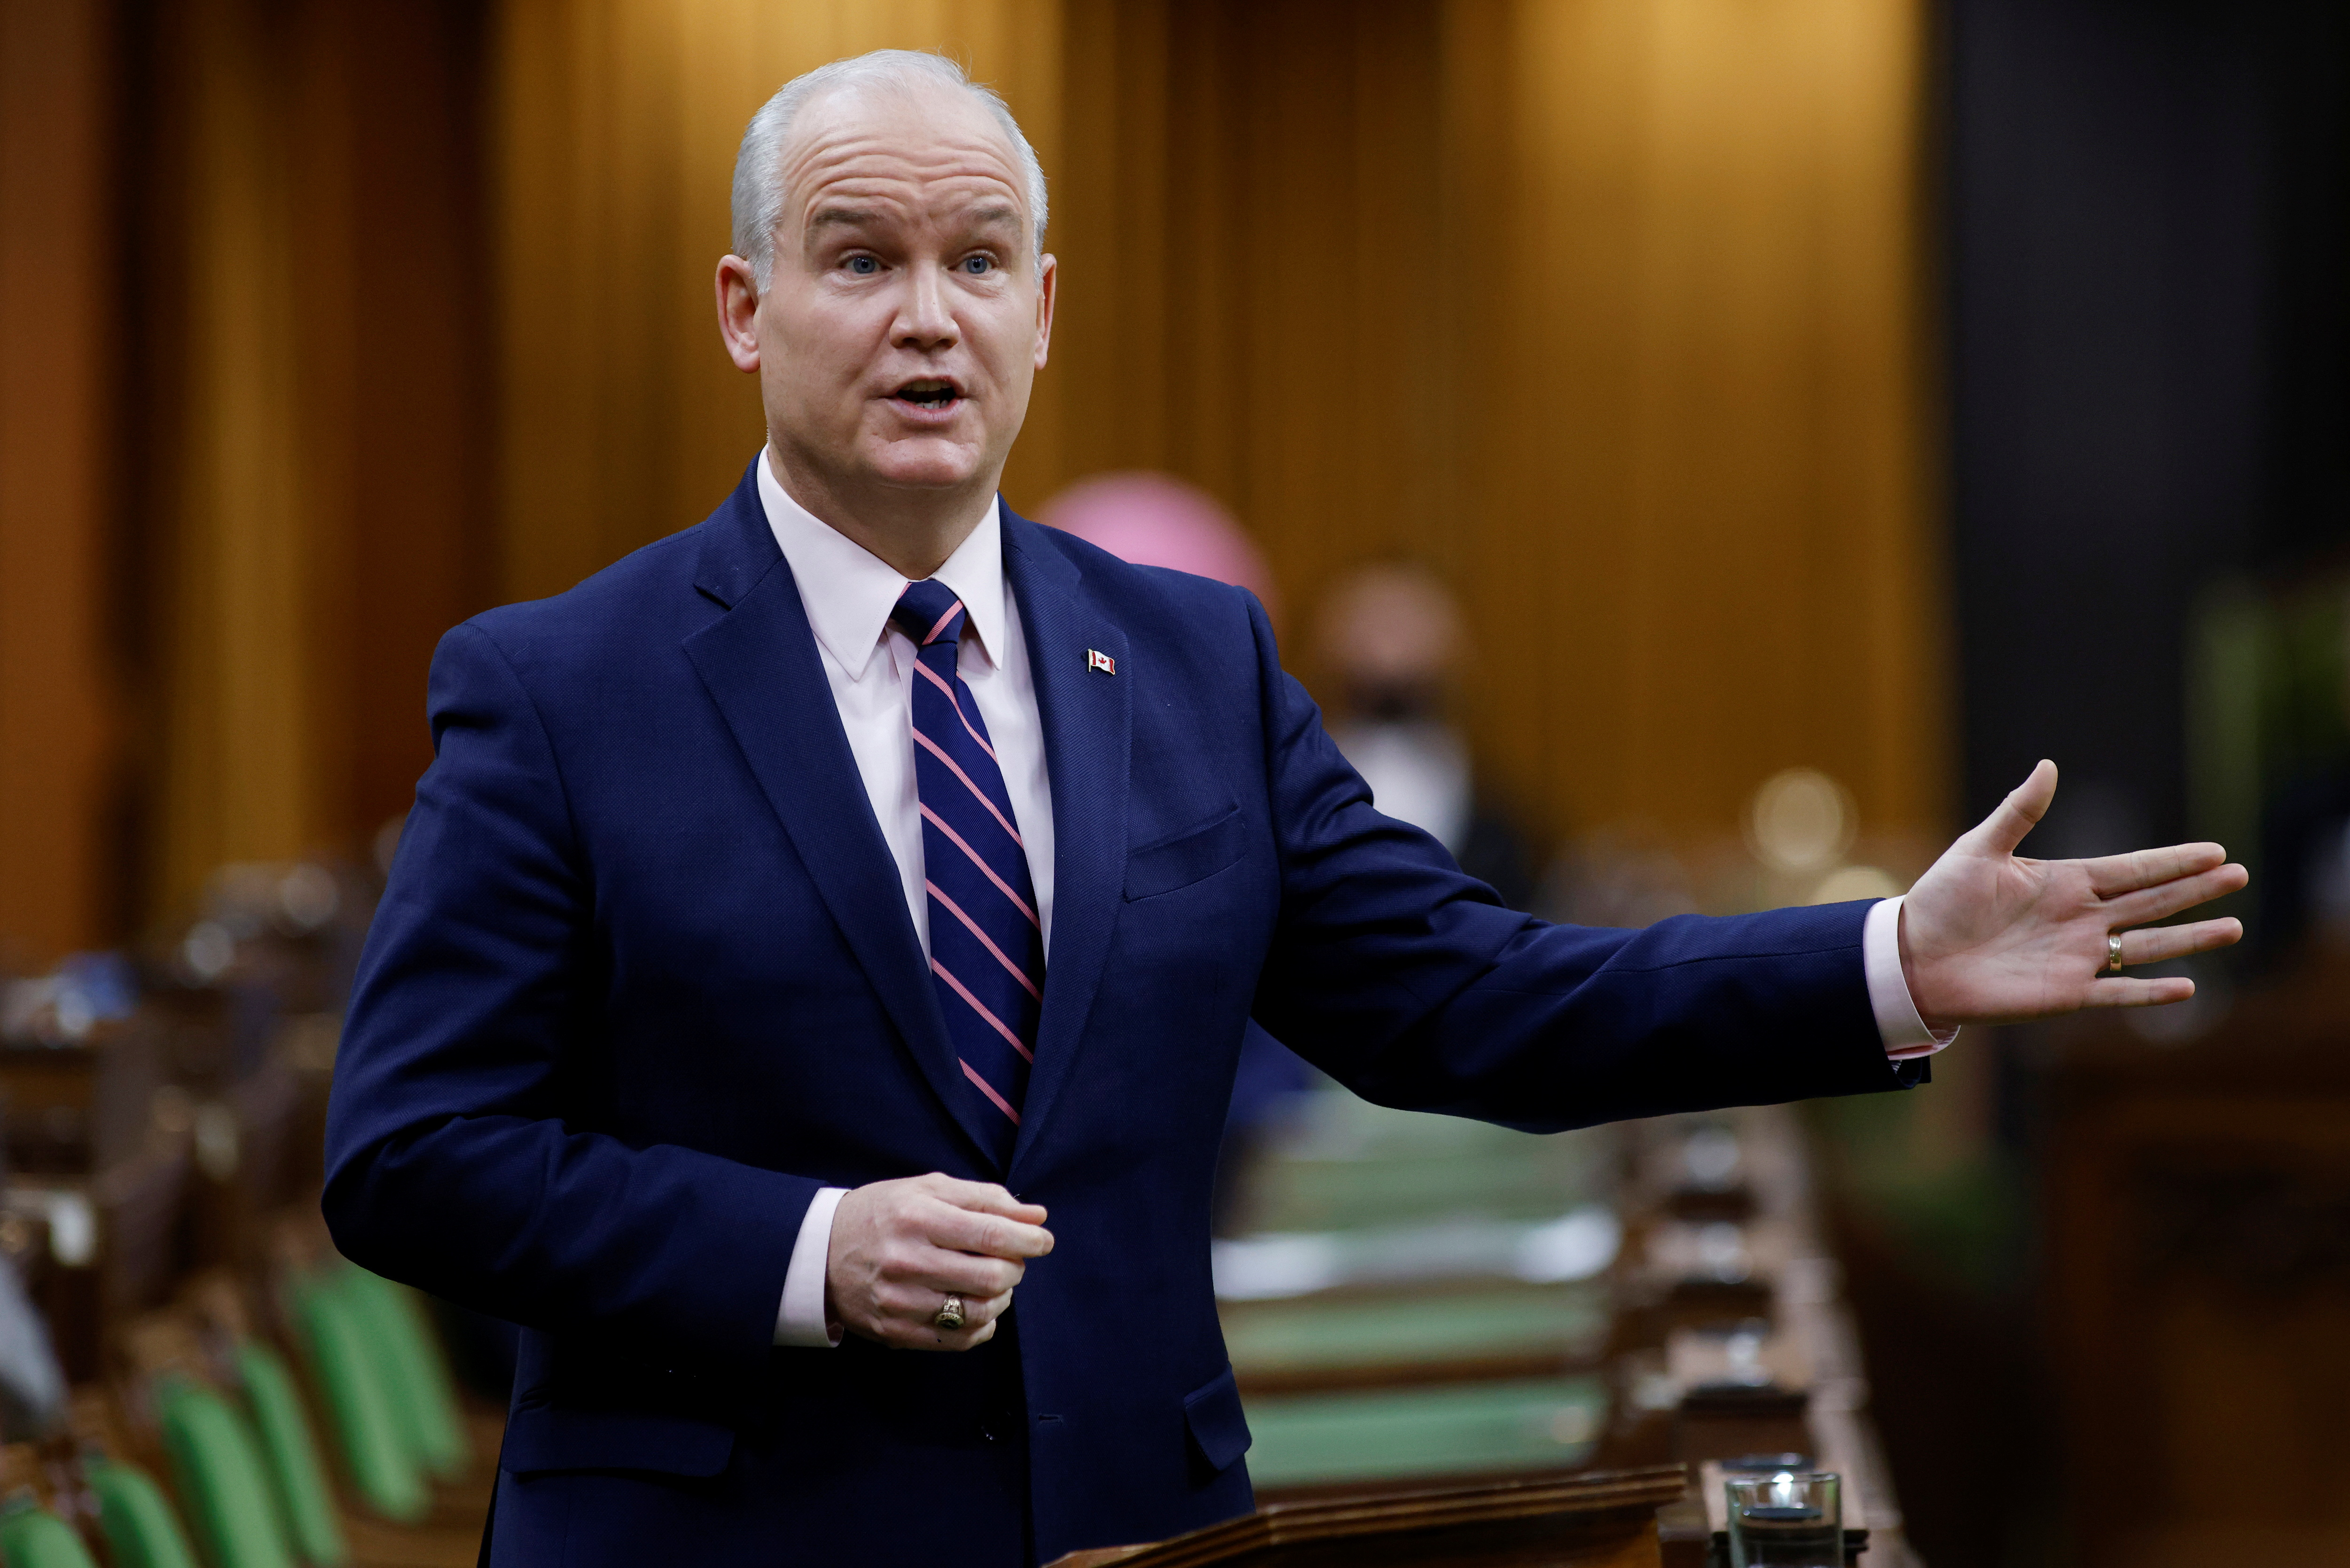 Canada's Conservative Party leader Erin O'Toole gestures as he speaks during Question Period, as efforts continue to help slow the spread of the coronavirus disease (COVID-19), in the House of Commons on Parliament Hill in Ottawa, Ontario, Canada February 24, 2021. REUTERS/Blair Gable